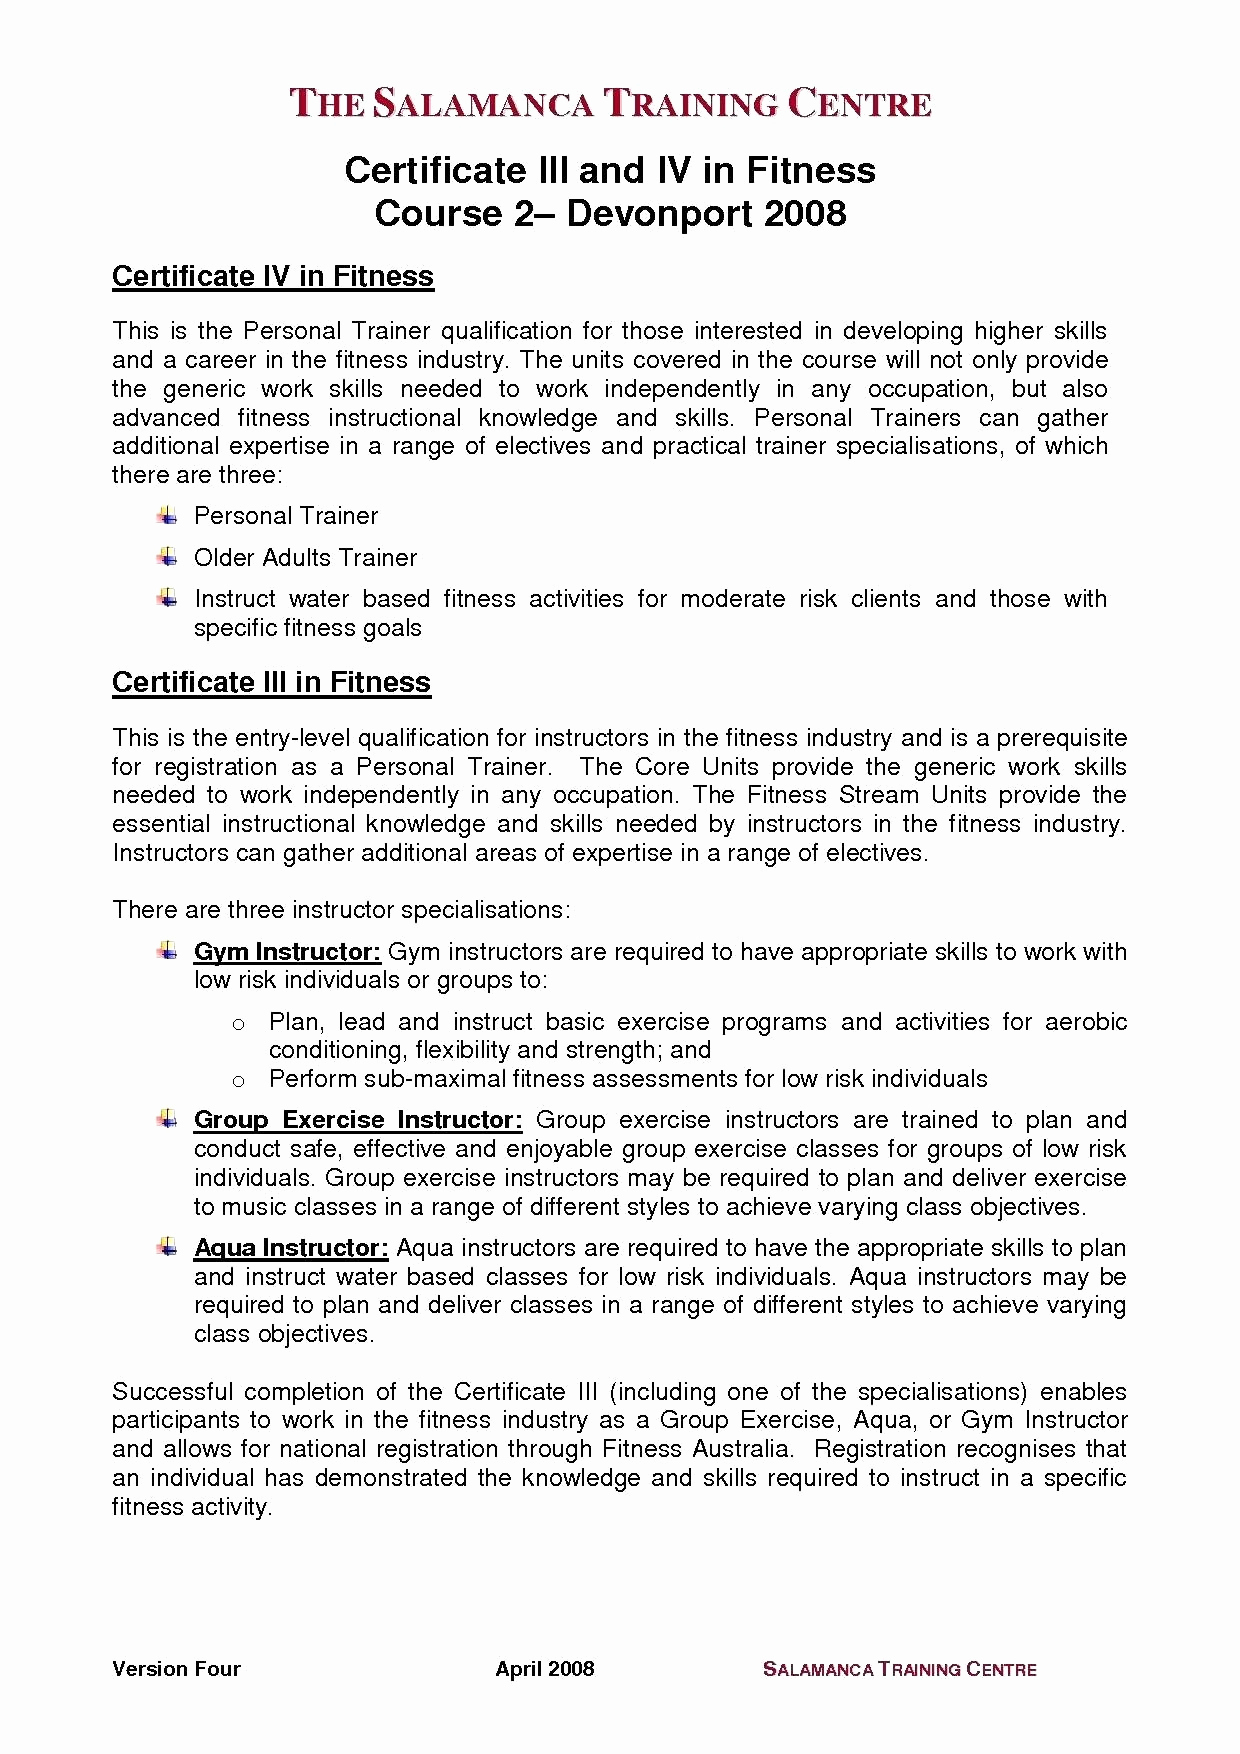 About Me In Resume - Resume Help Near Me Awesome Help with Resume Inspirational Technical